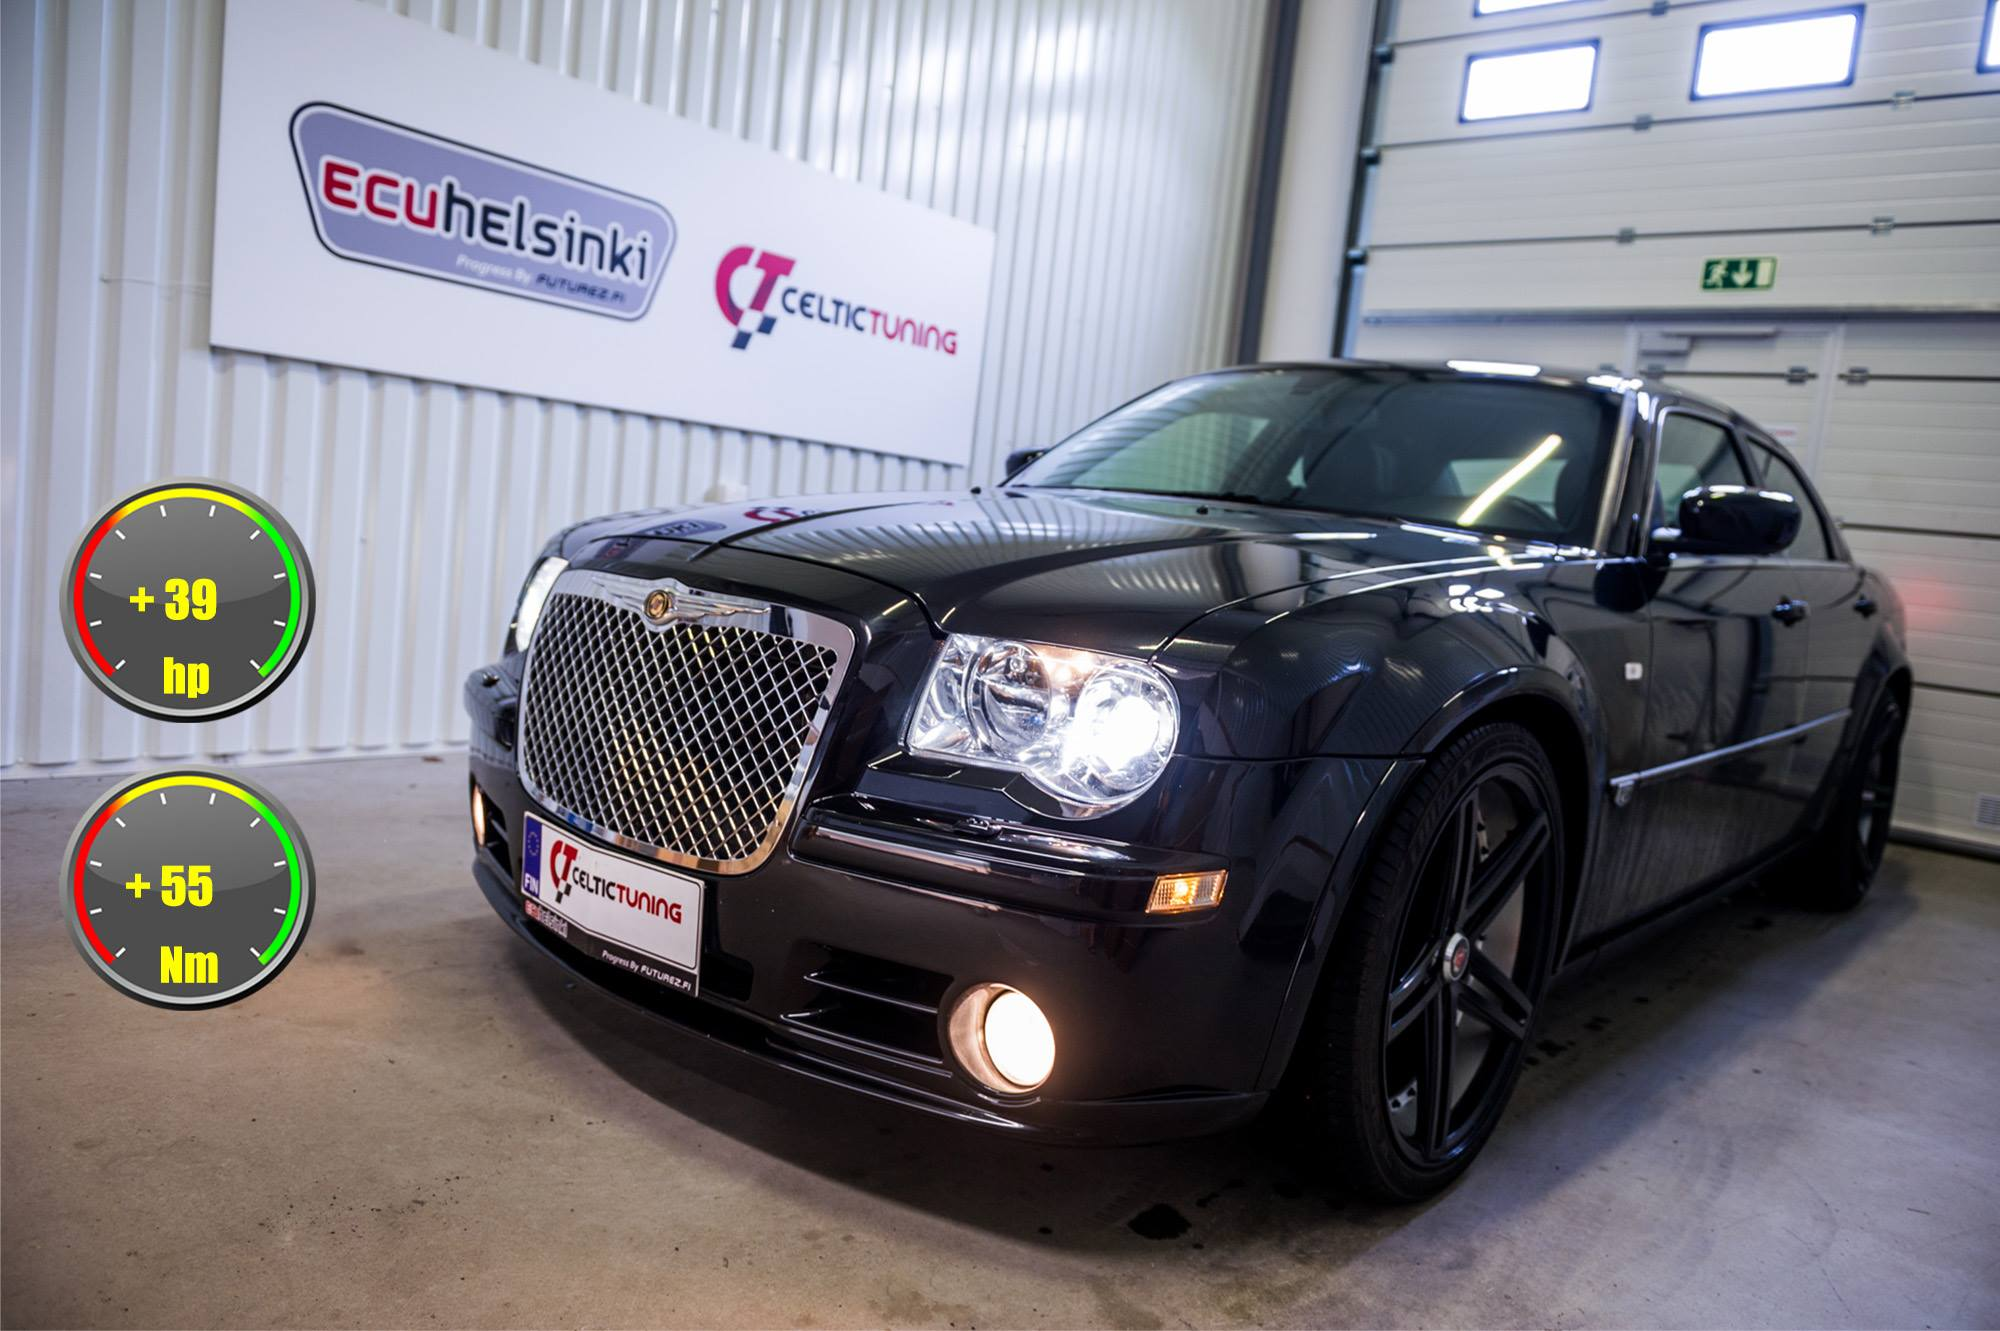 Chrysler 300C lastutus celtic tuning